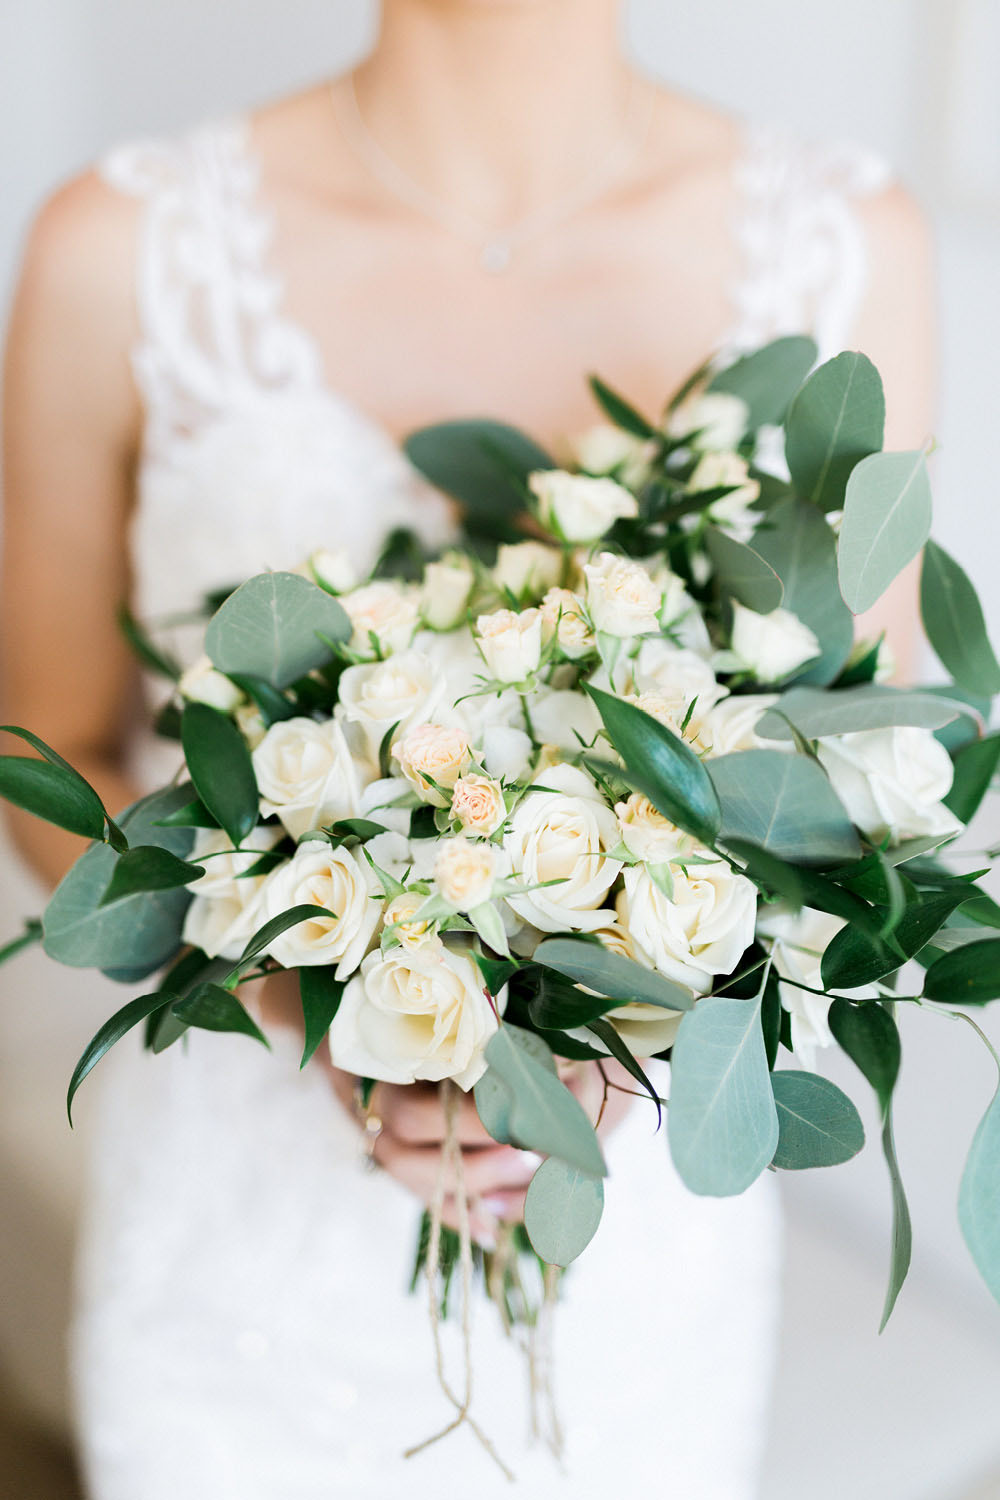 wedding-photography-portugal-bride-floral-bouquet-8.jpg